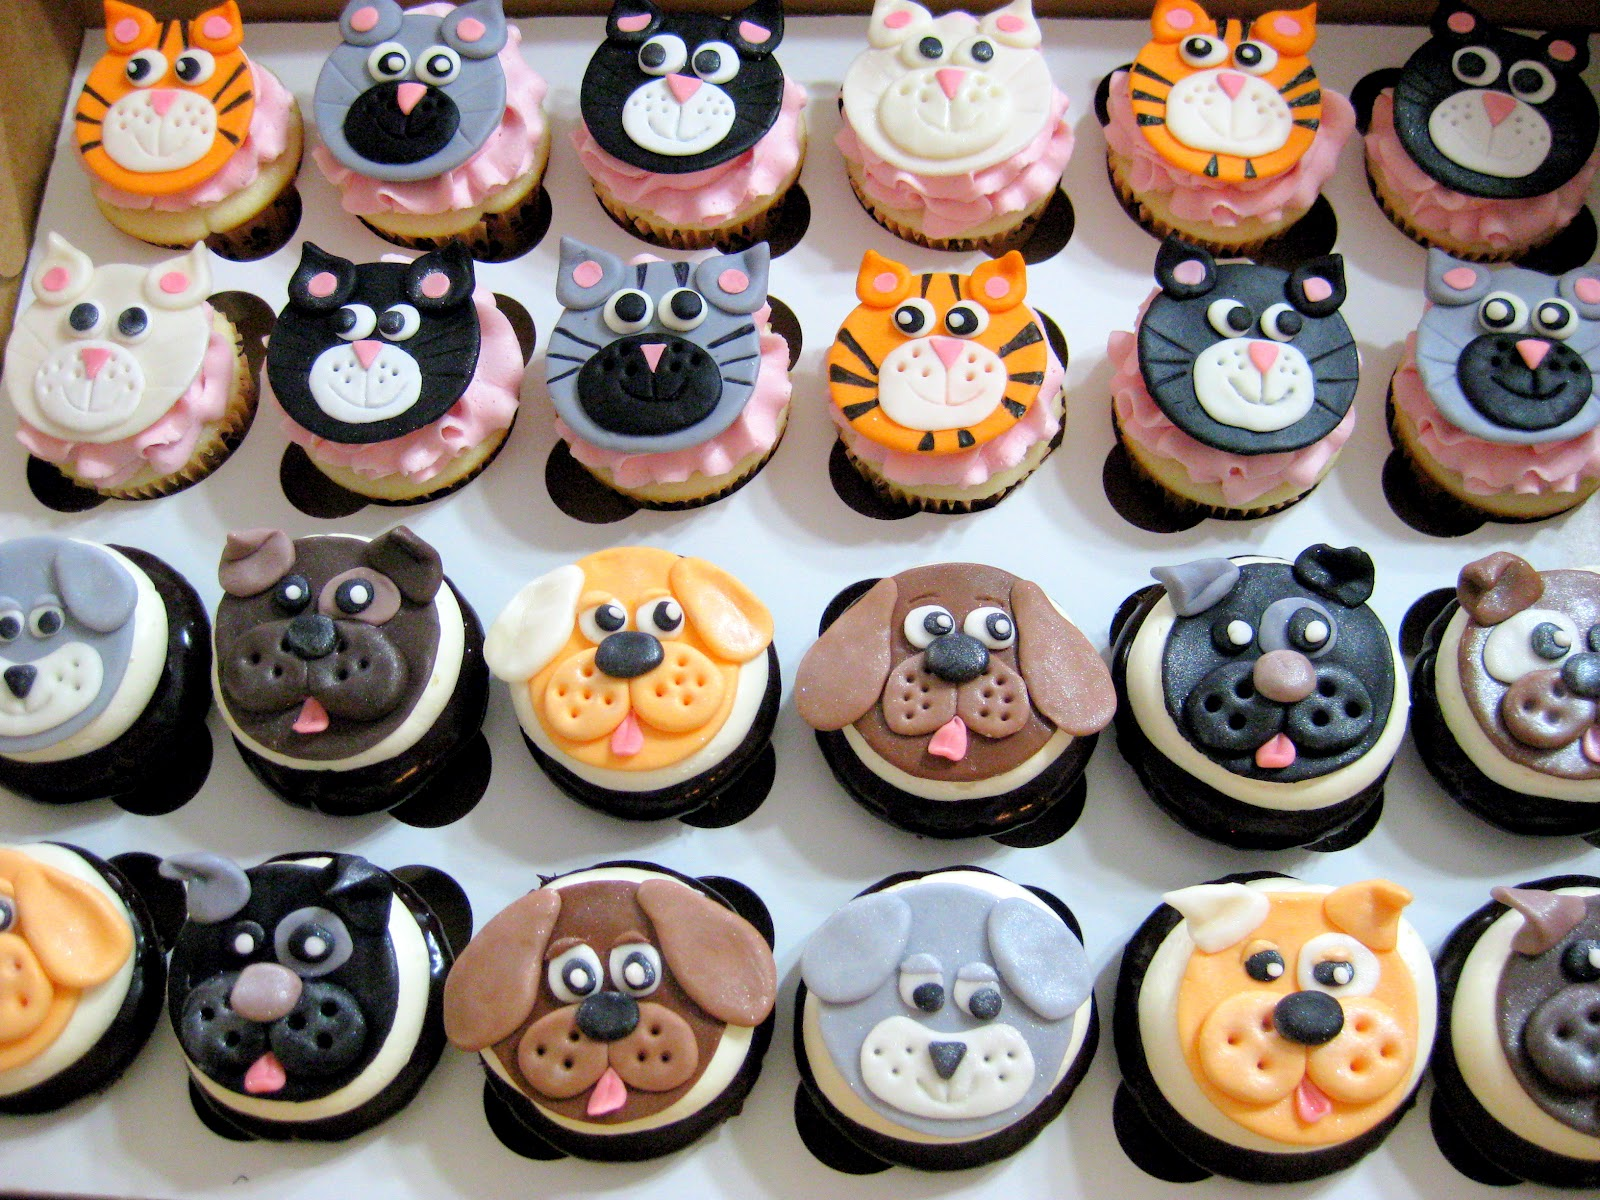 cupcake-day-spca-barks-and-rec-trail-bc